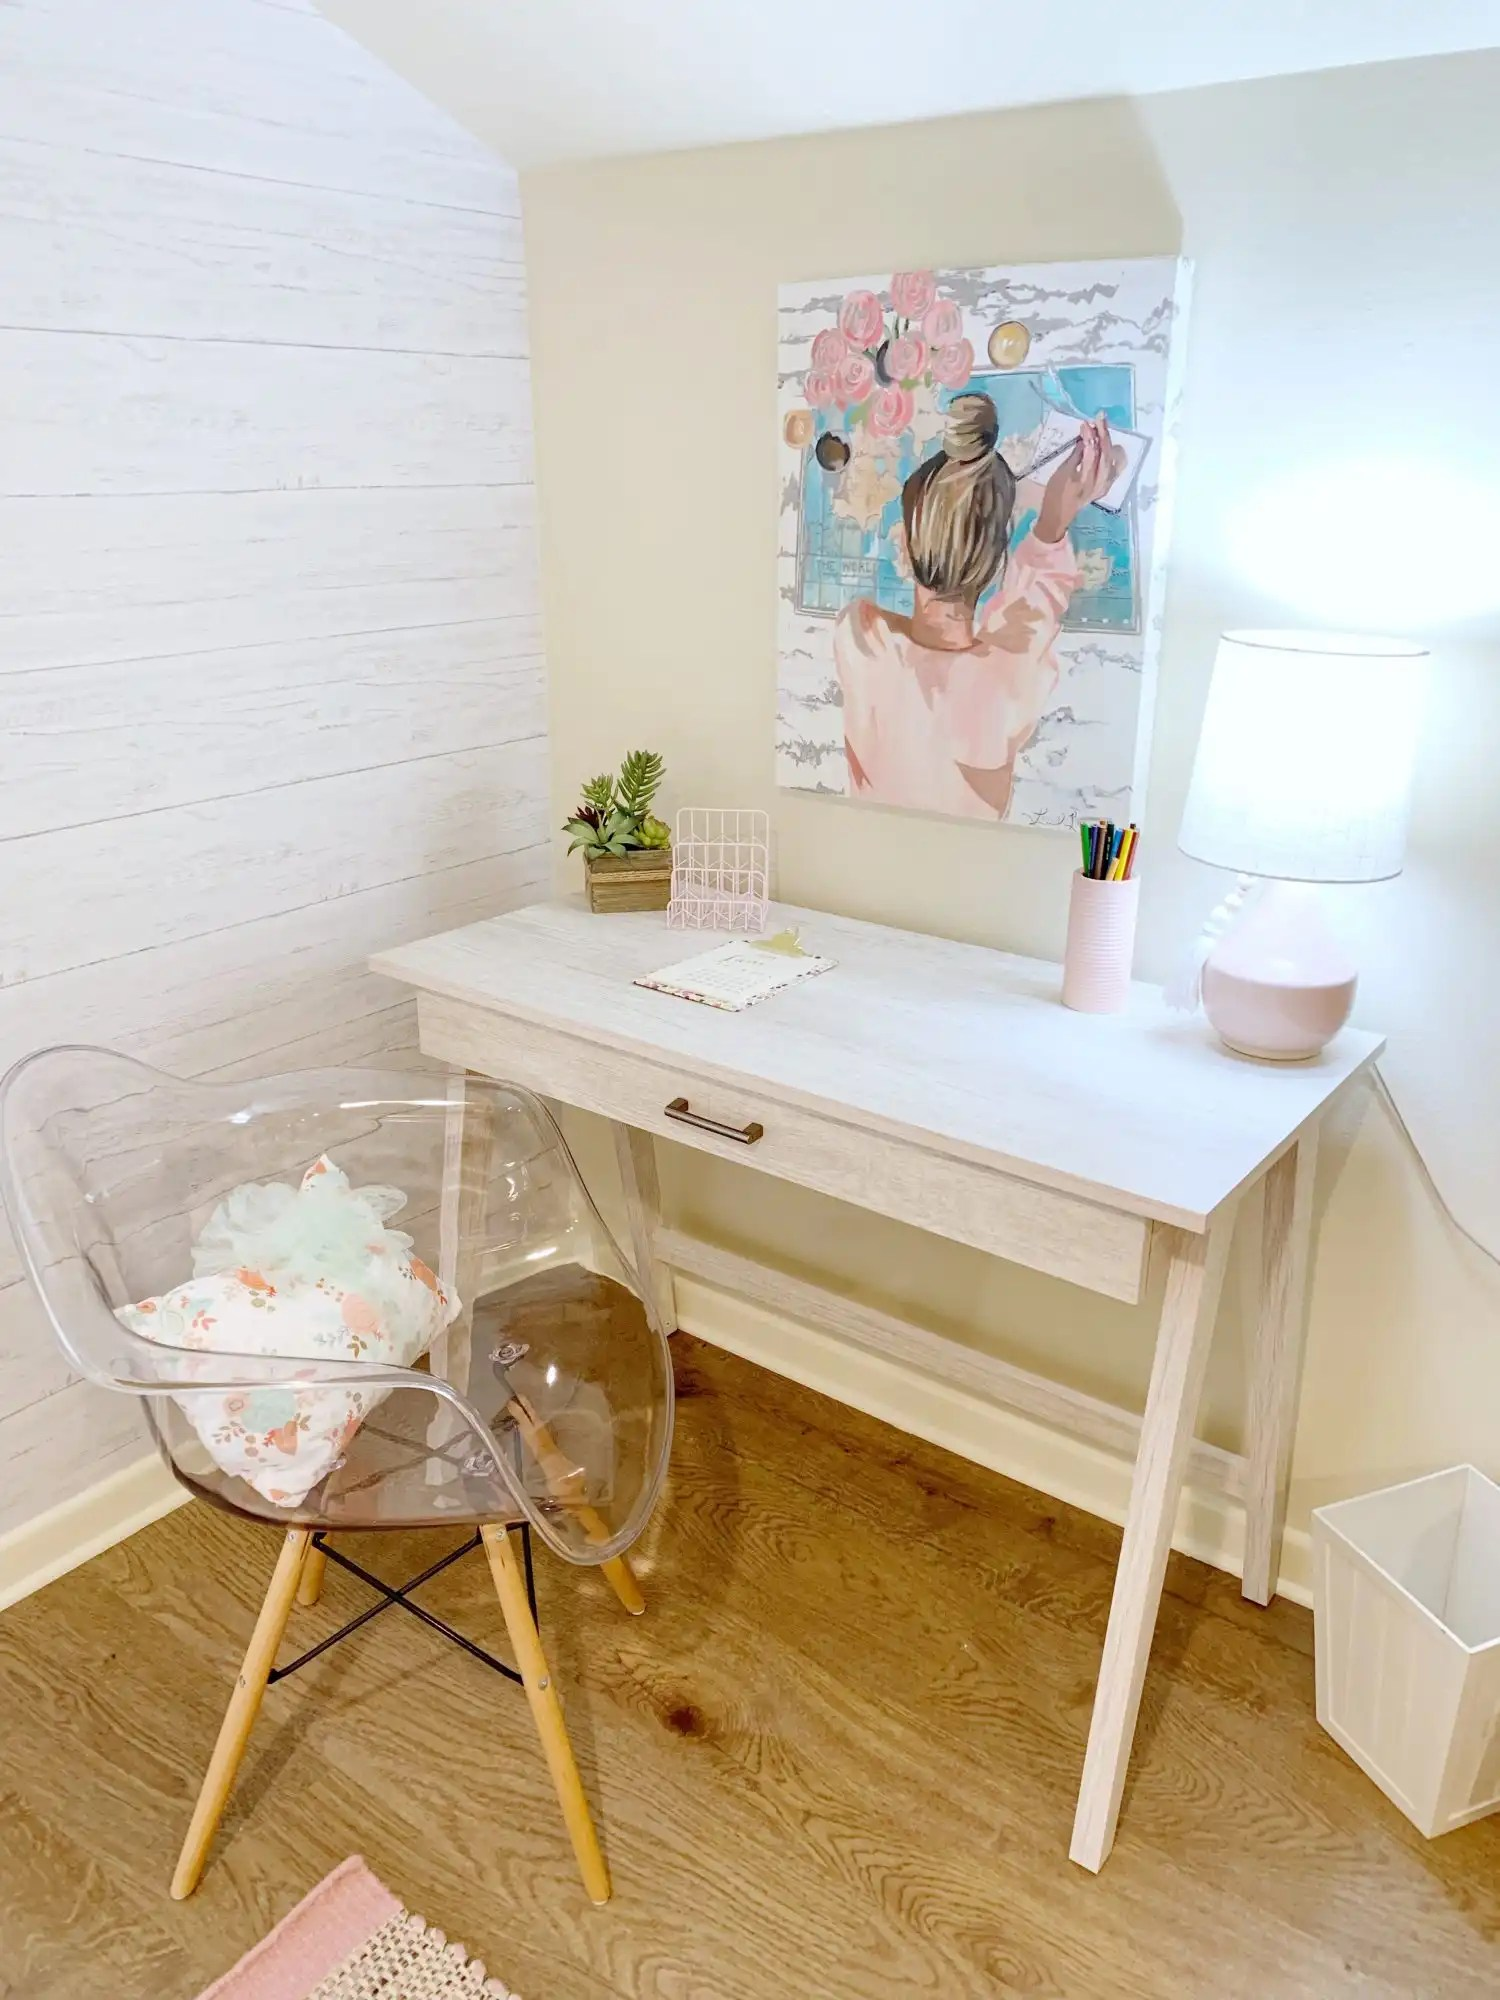 The study area in a teenage girls bedroom with desk and chair.